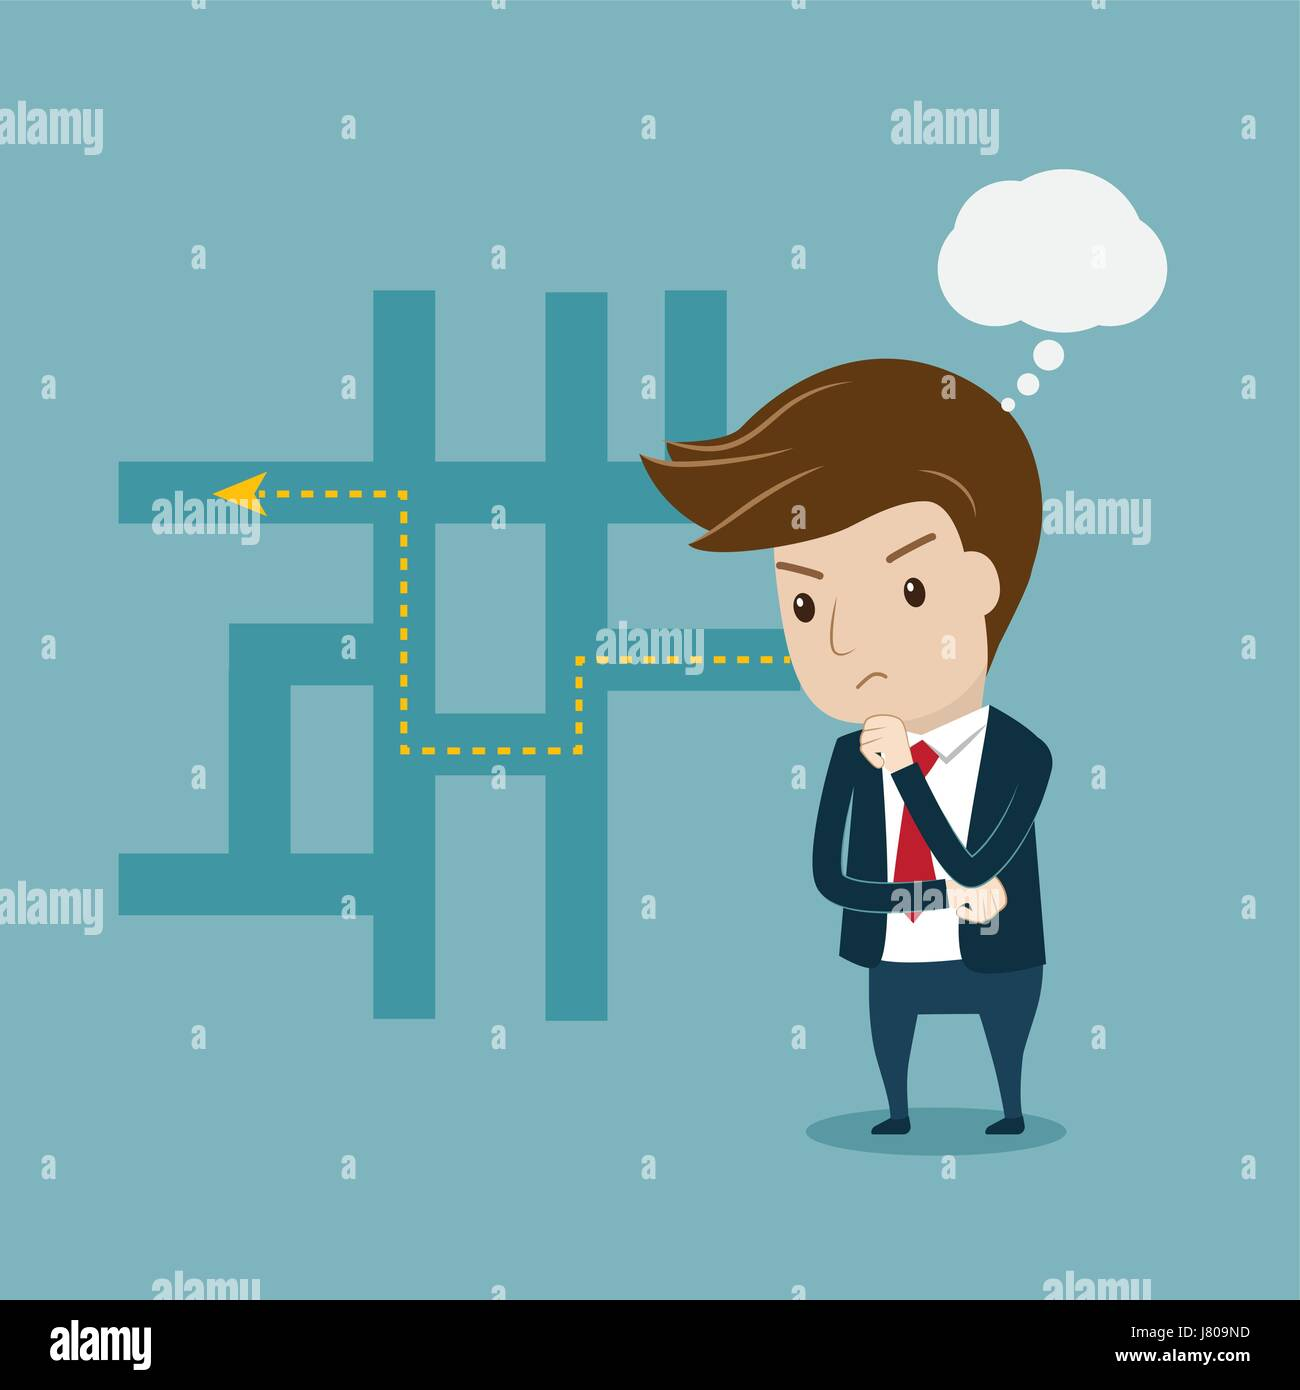 Businessman thinking of his best plans. Flat style vector for thinking, planning or solution concept. - Stock Vector